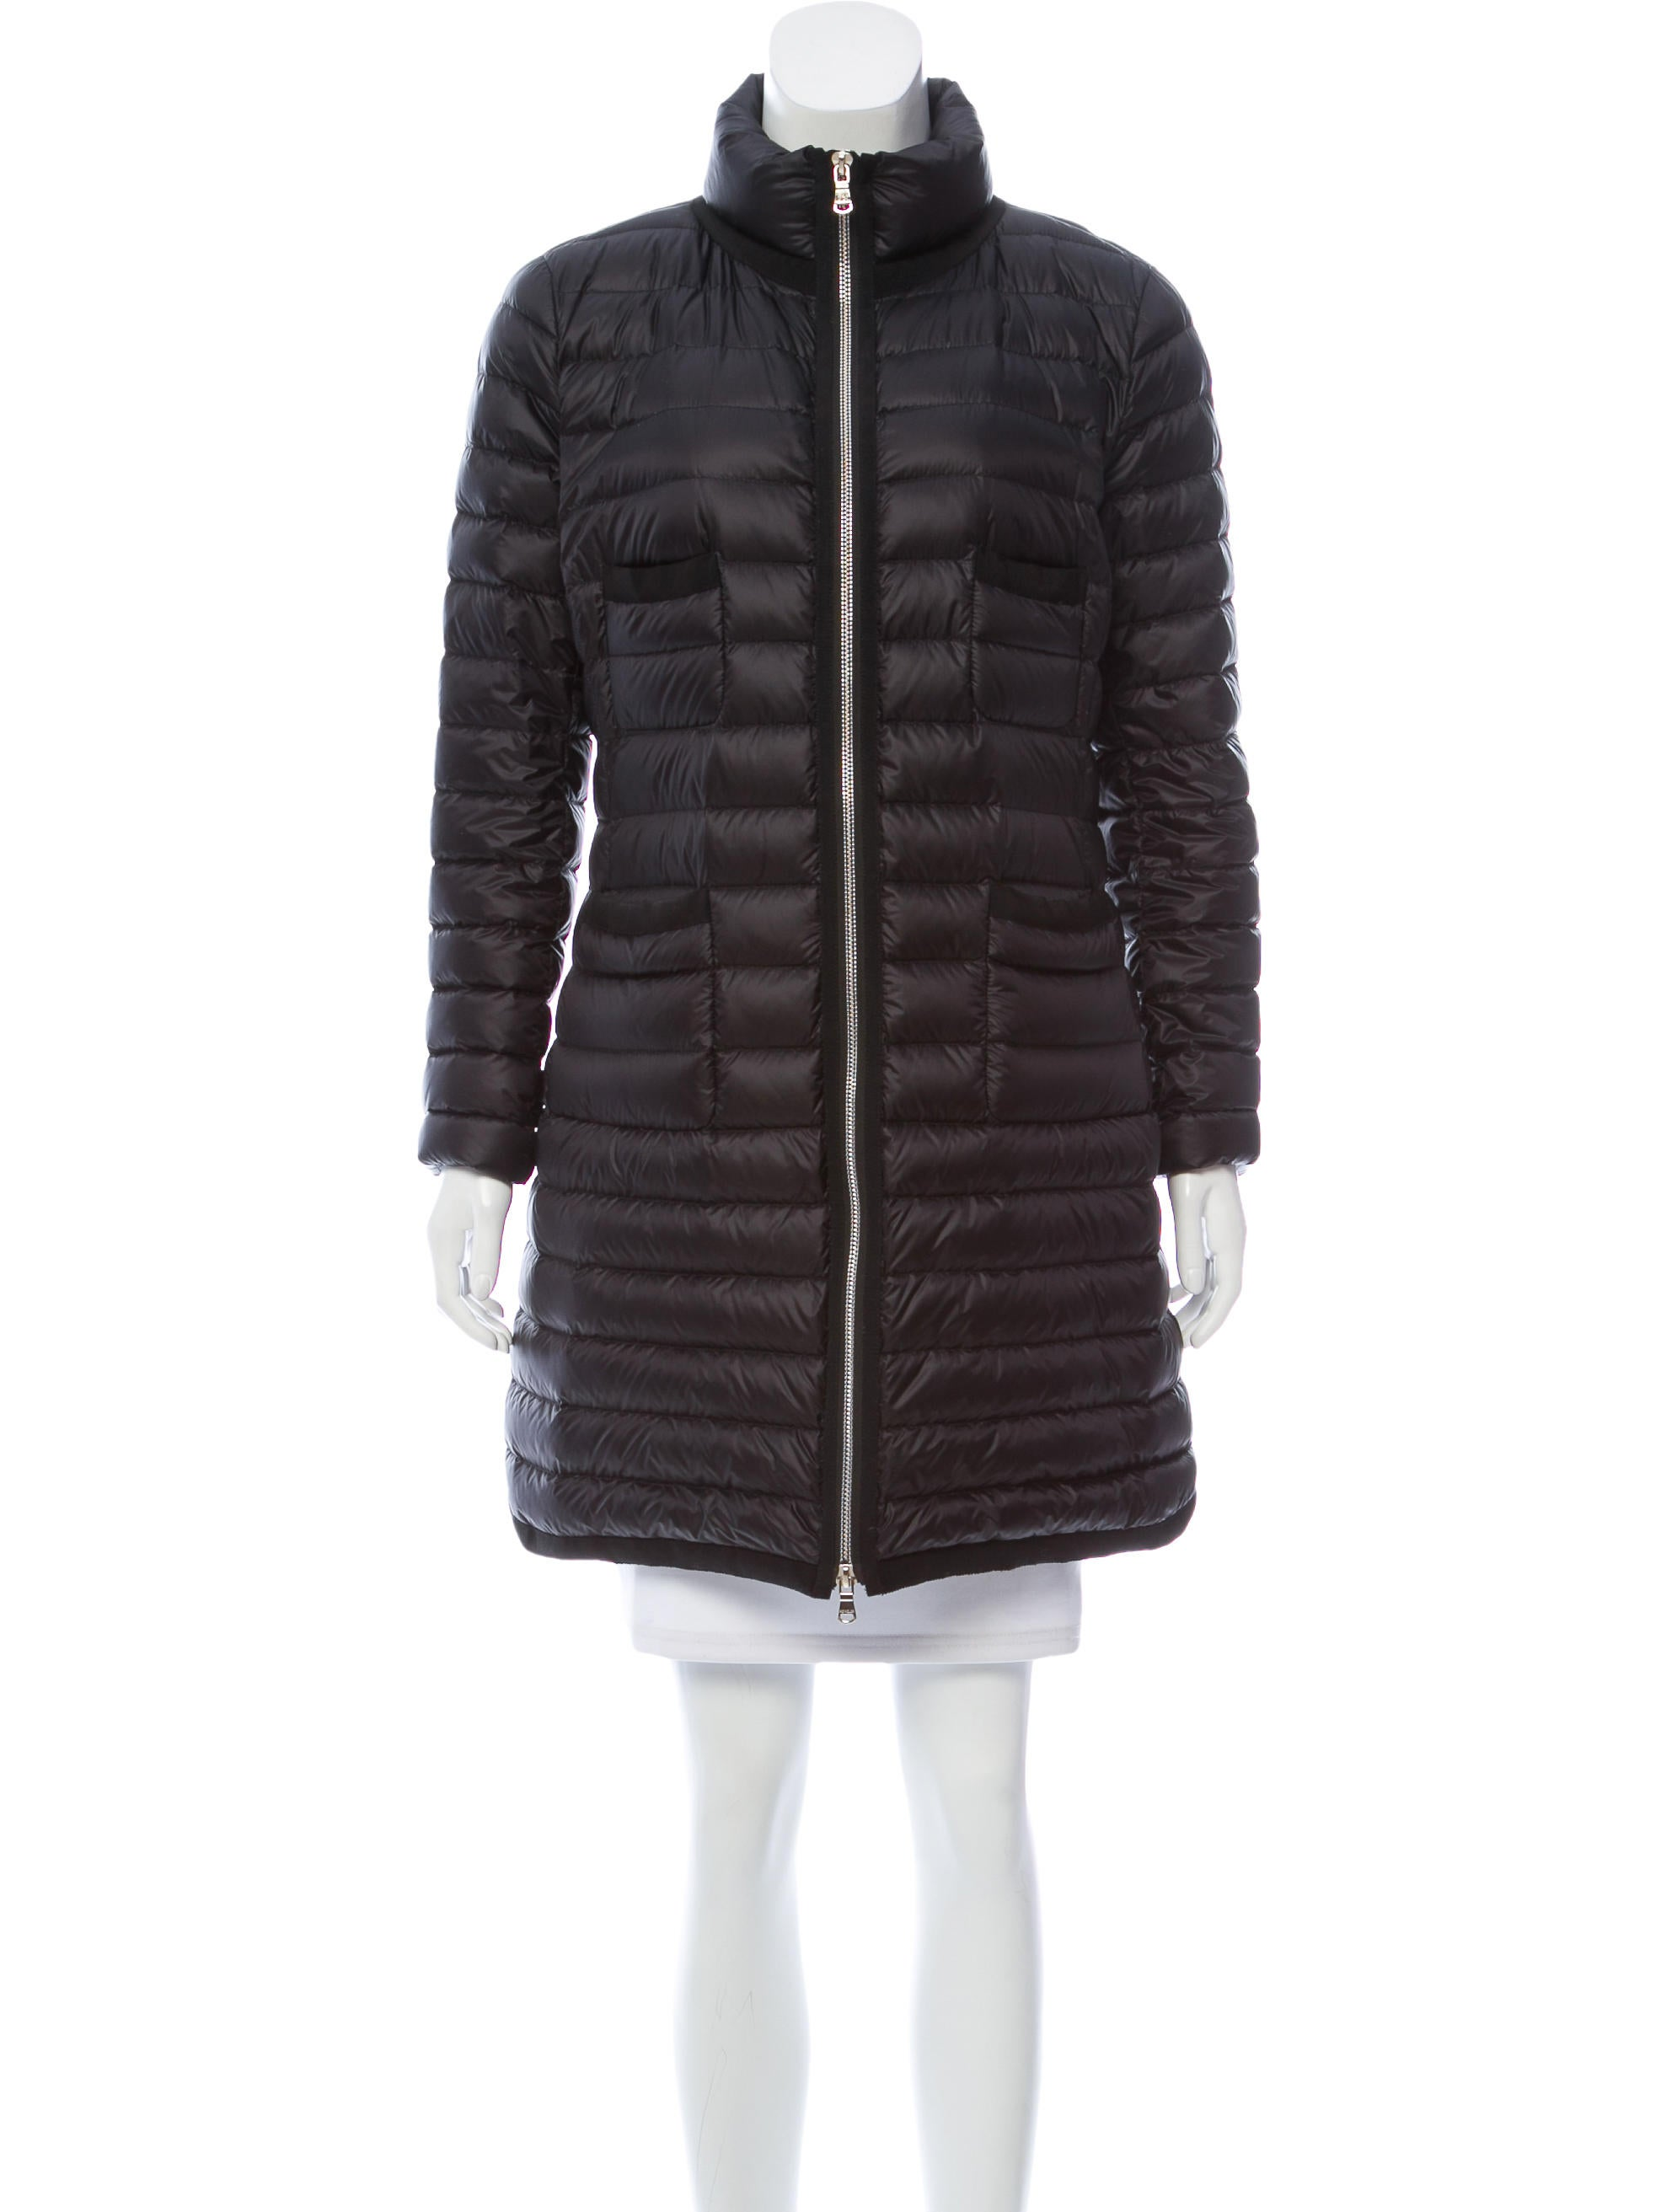 Bogue Puffer Coat